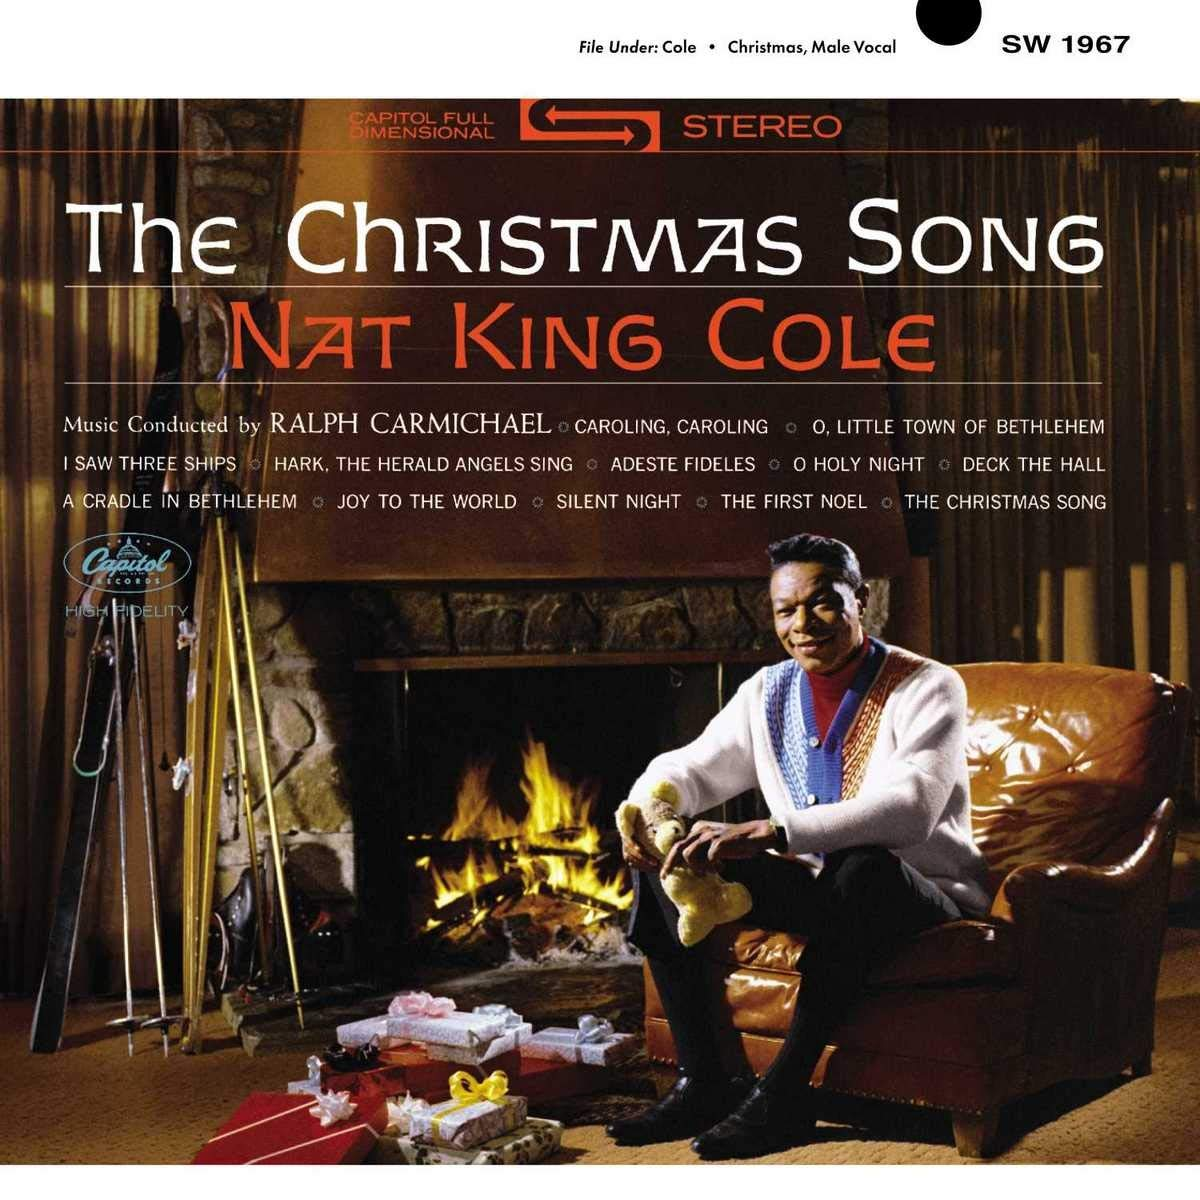 The Christmas Song (Expanded Edt.) - Nat King Cole: Amazon.de: Musik